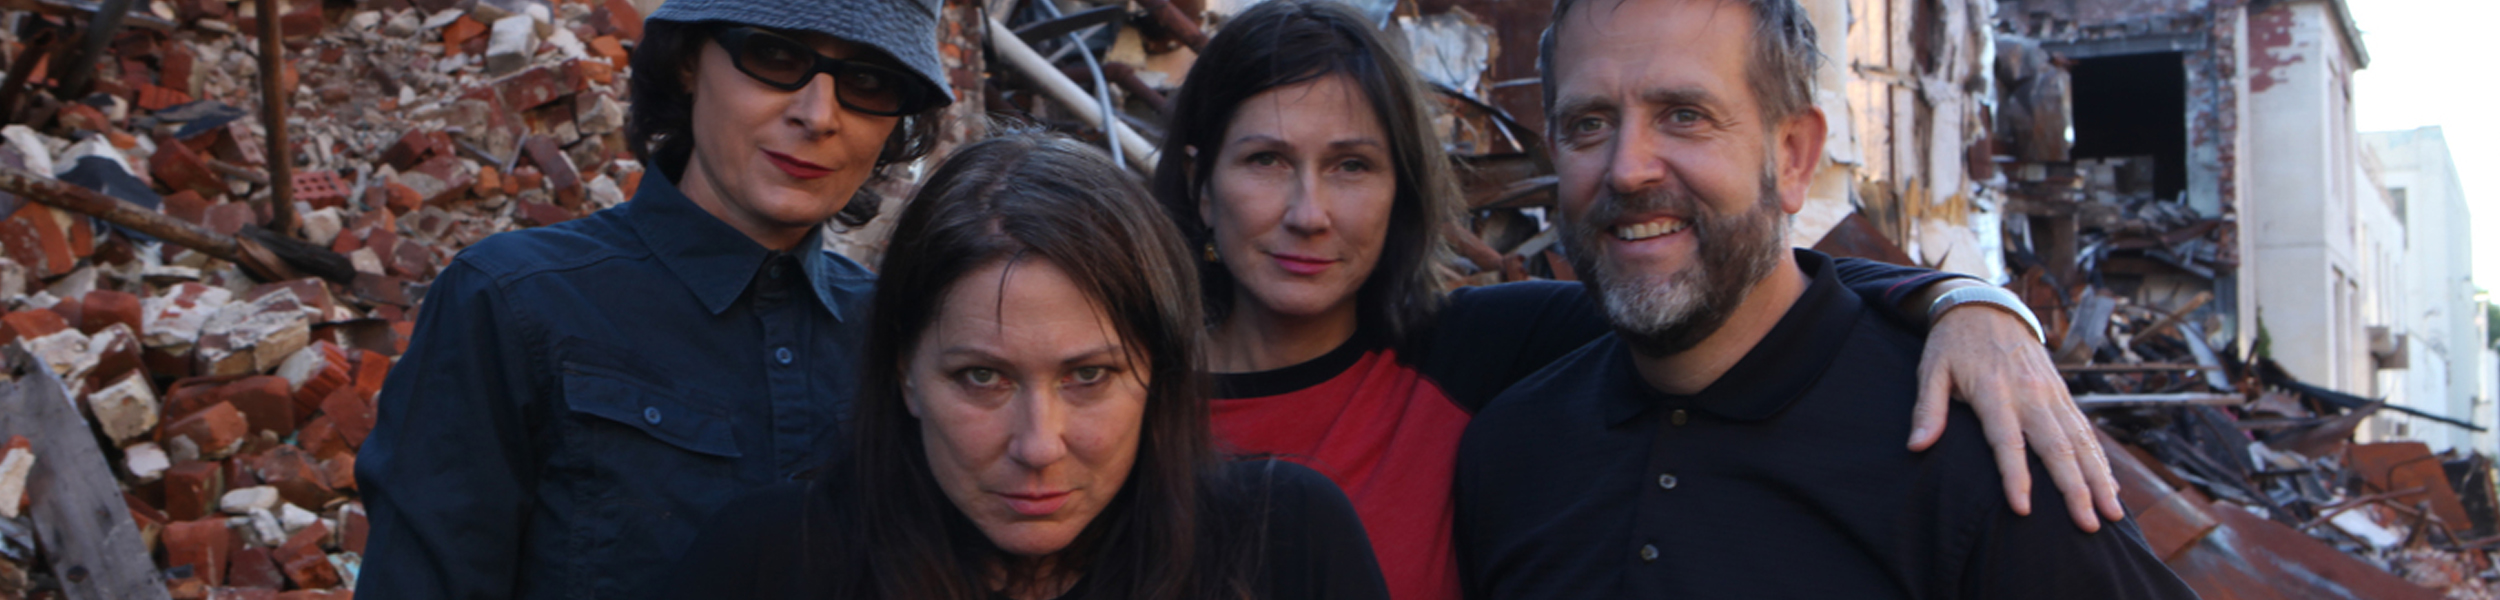 The Breeders - 'Album de la Semaine' Live Footage, 'All Nerve' Out Now